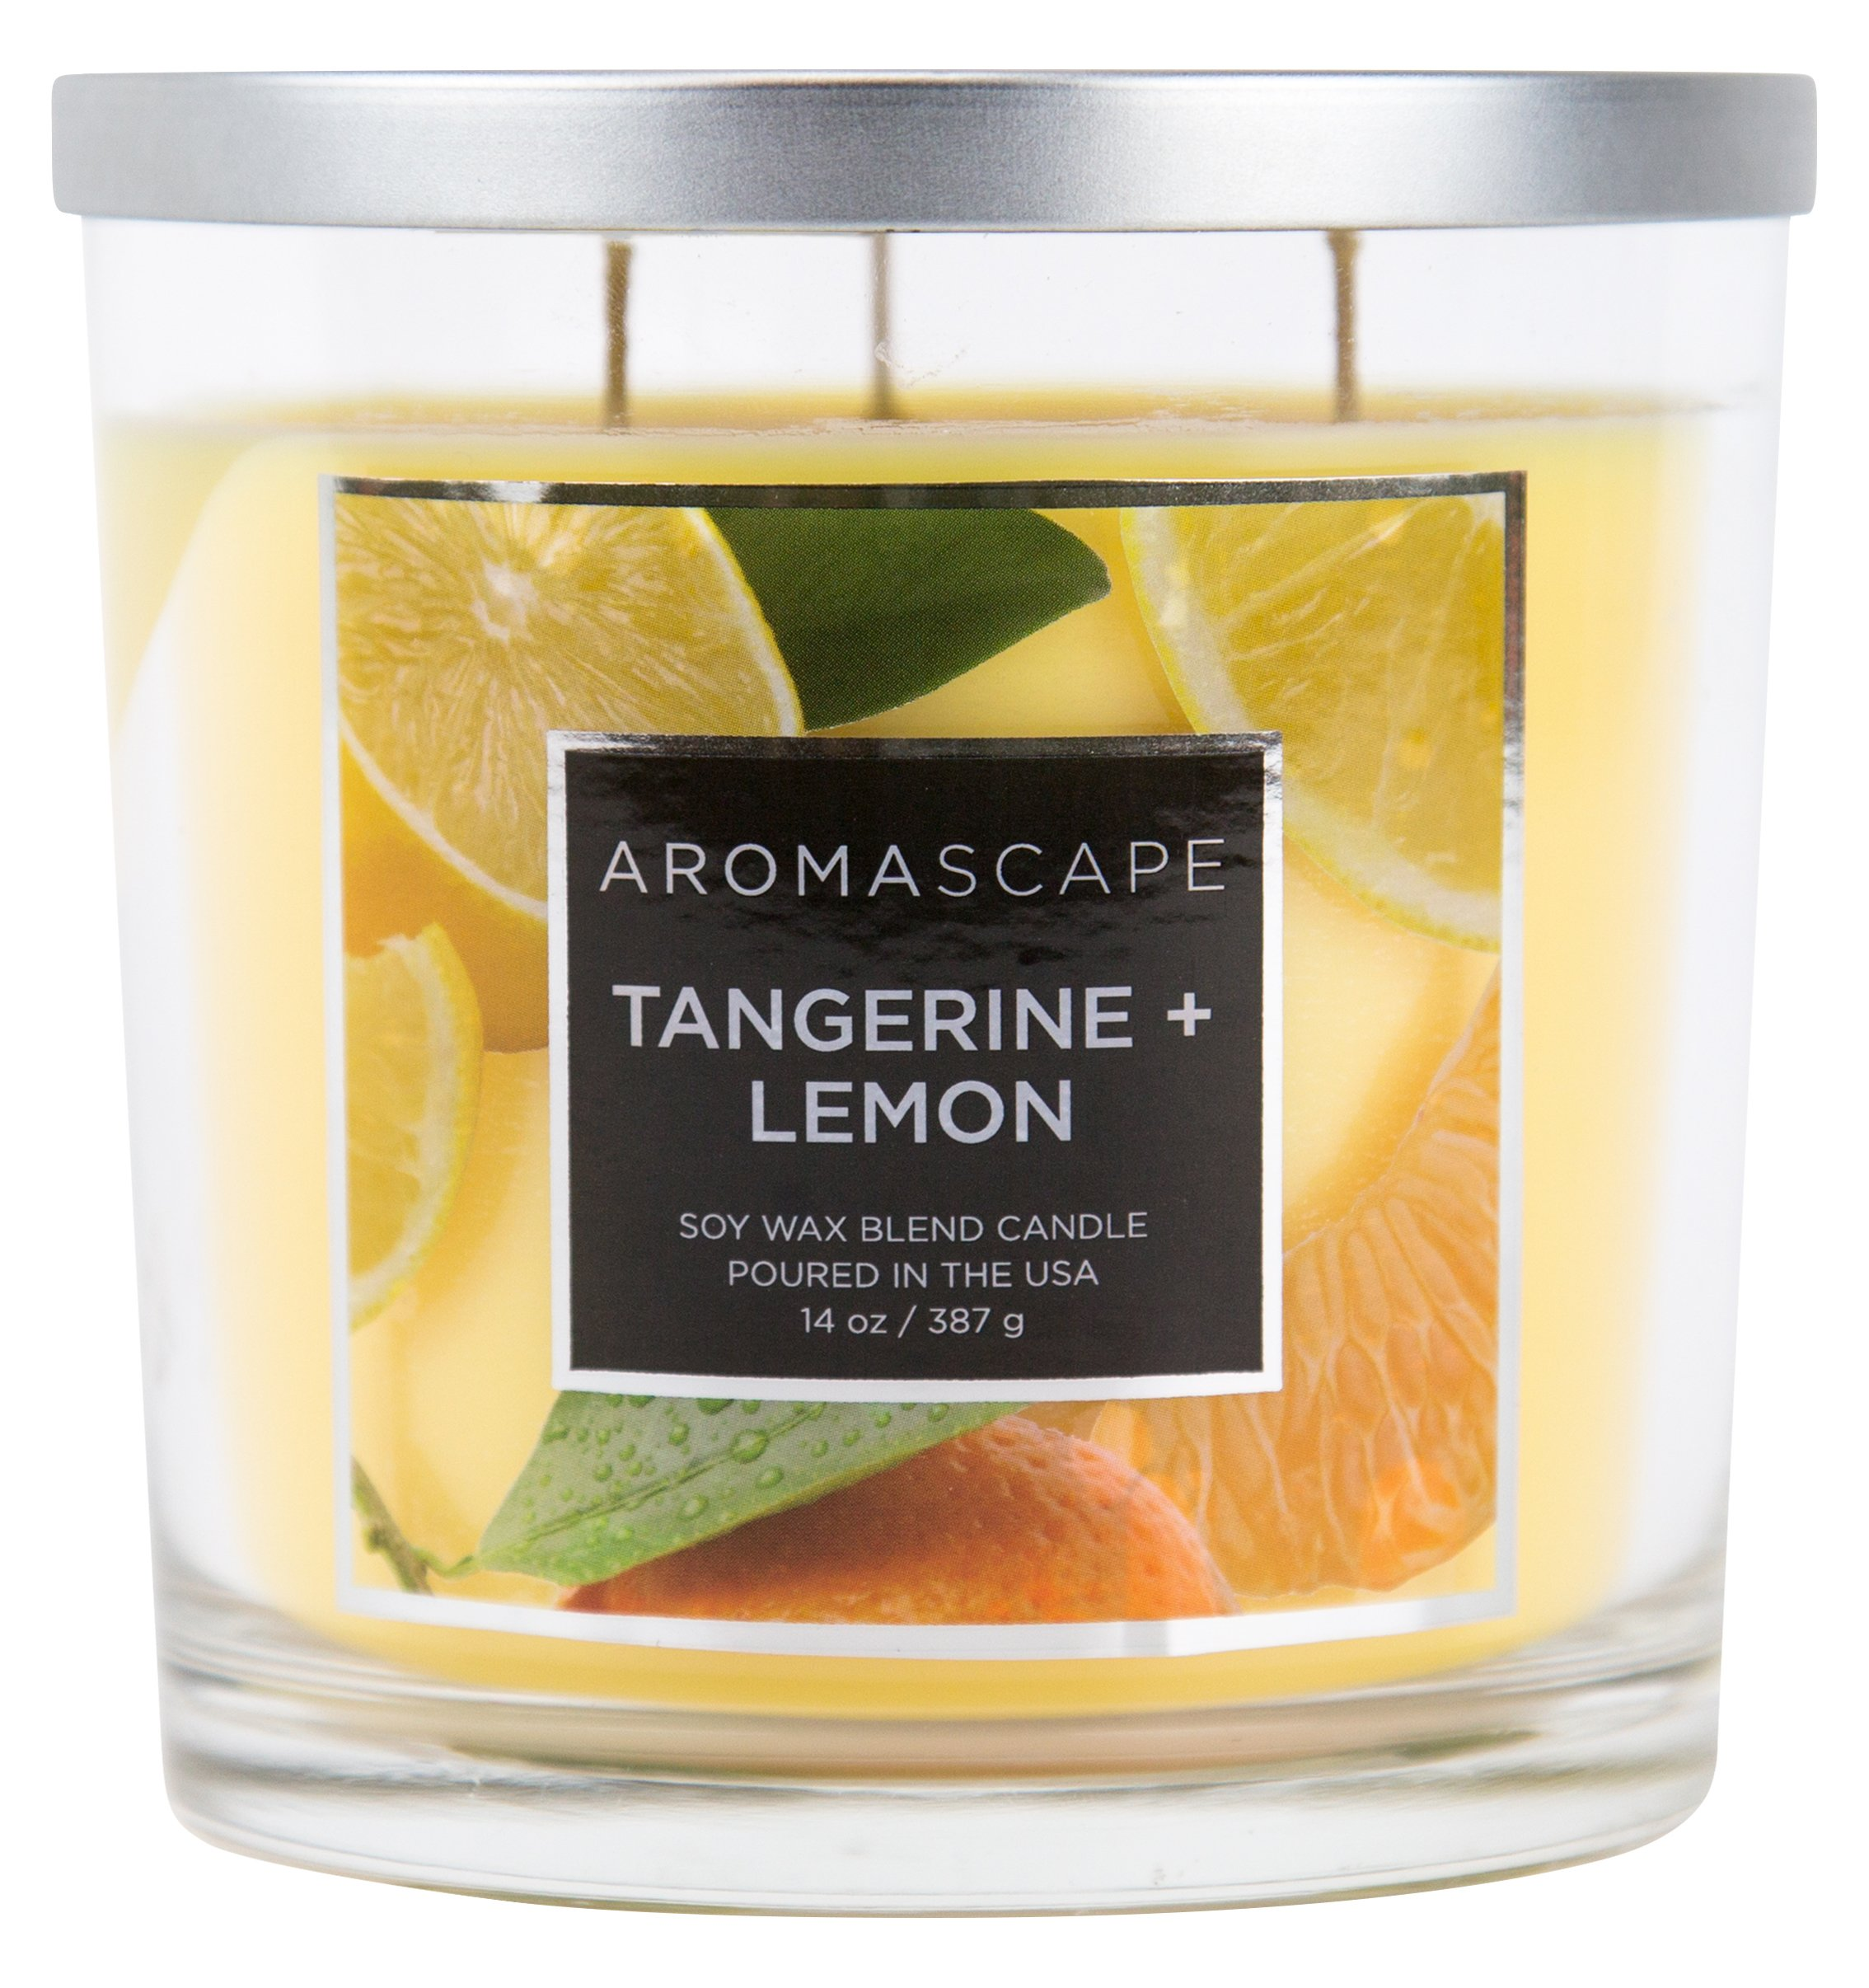 Aromascape 3-Wick Scented Jar Candle, Tangerine & Lemon